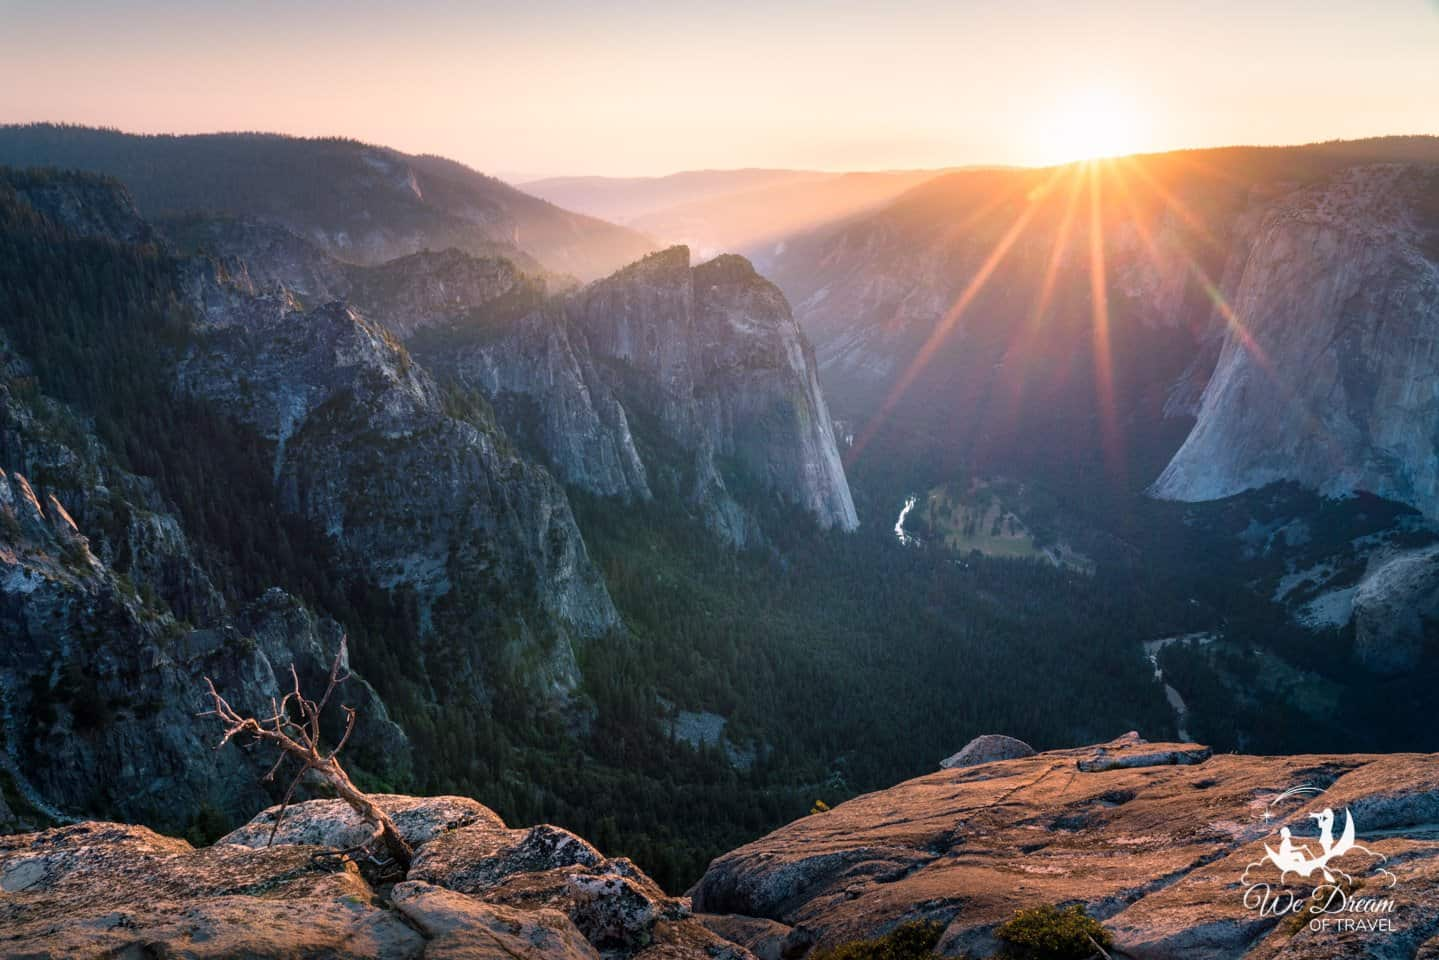 Another view of the sunset from Taft Point on Glacier Point Road.